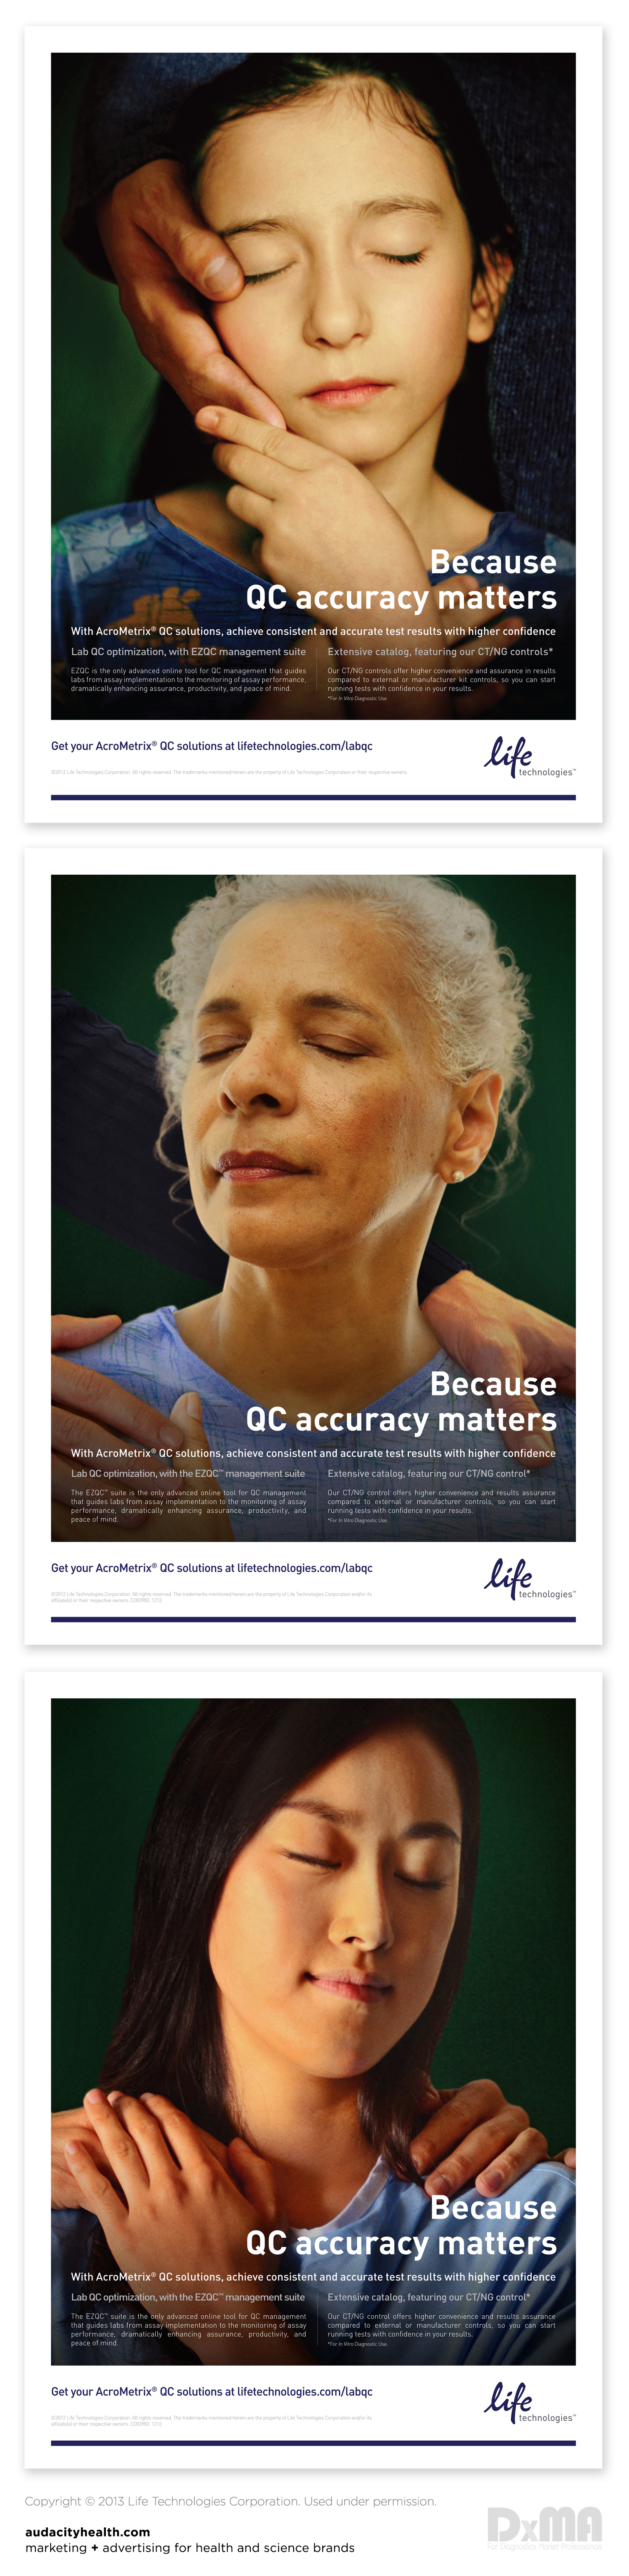 Award Winning Life Technologies Ad Campaign Executing An Integrated Launch For 3 New Acrometrix Products Launch Campaign Health Science Ad Campaign